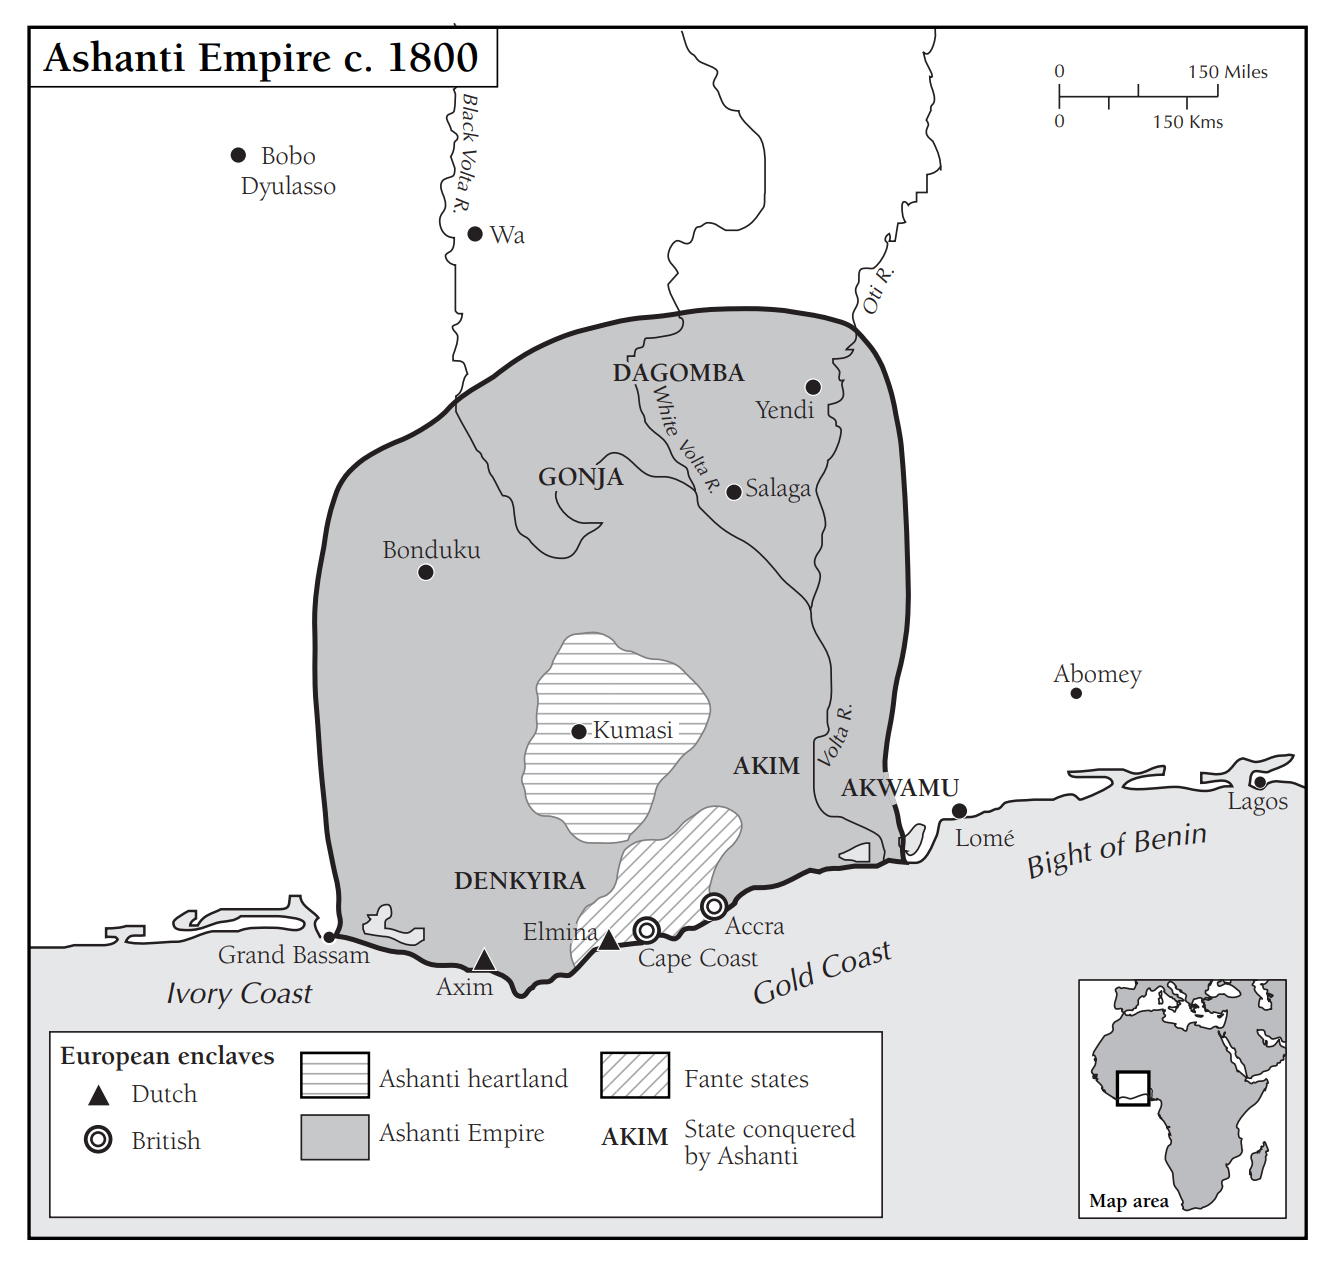 Map showing the Ashanti Empire in the 1800s, in what is modern-day Ghana